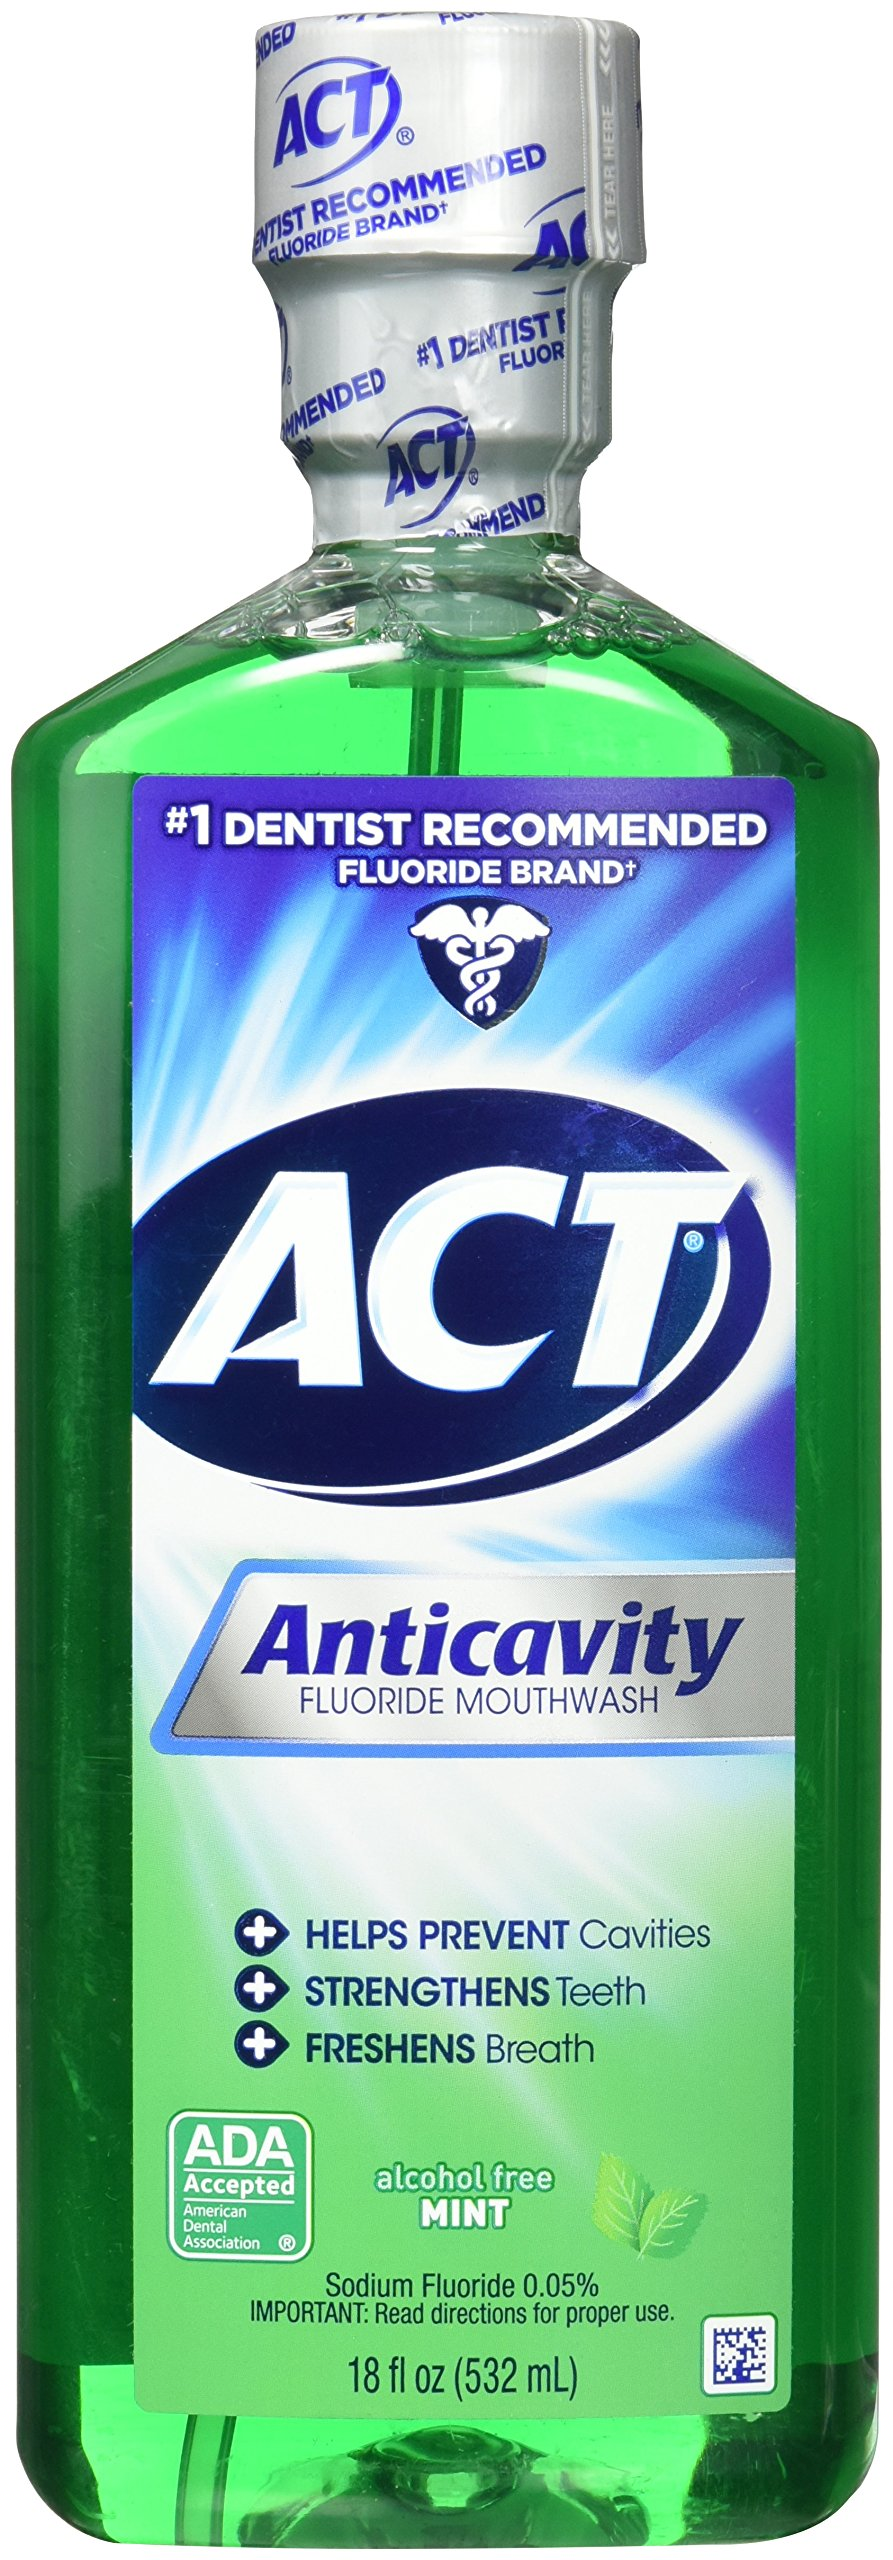 ACT Alcohol Free Anticavity Fluoride Rinse, Mint - 18 oz - 2 pk by ACT (Image #1)